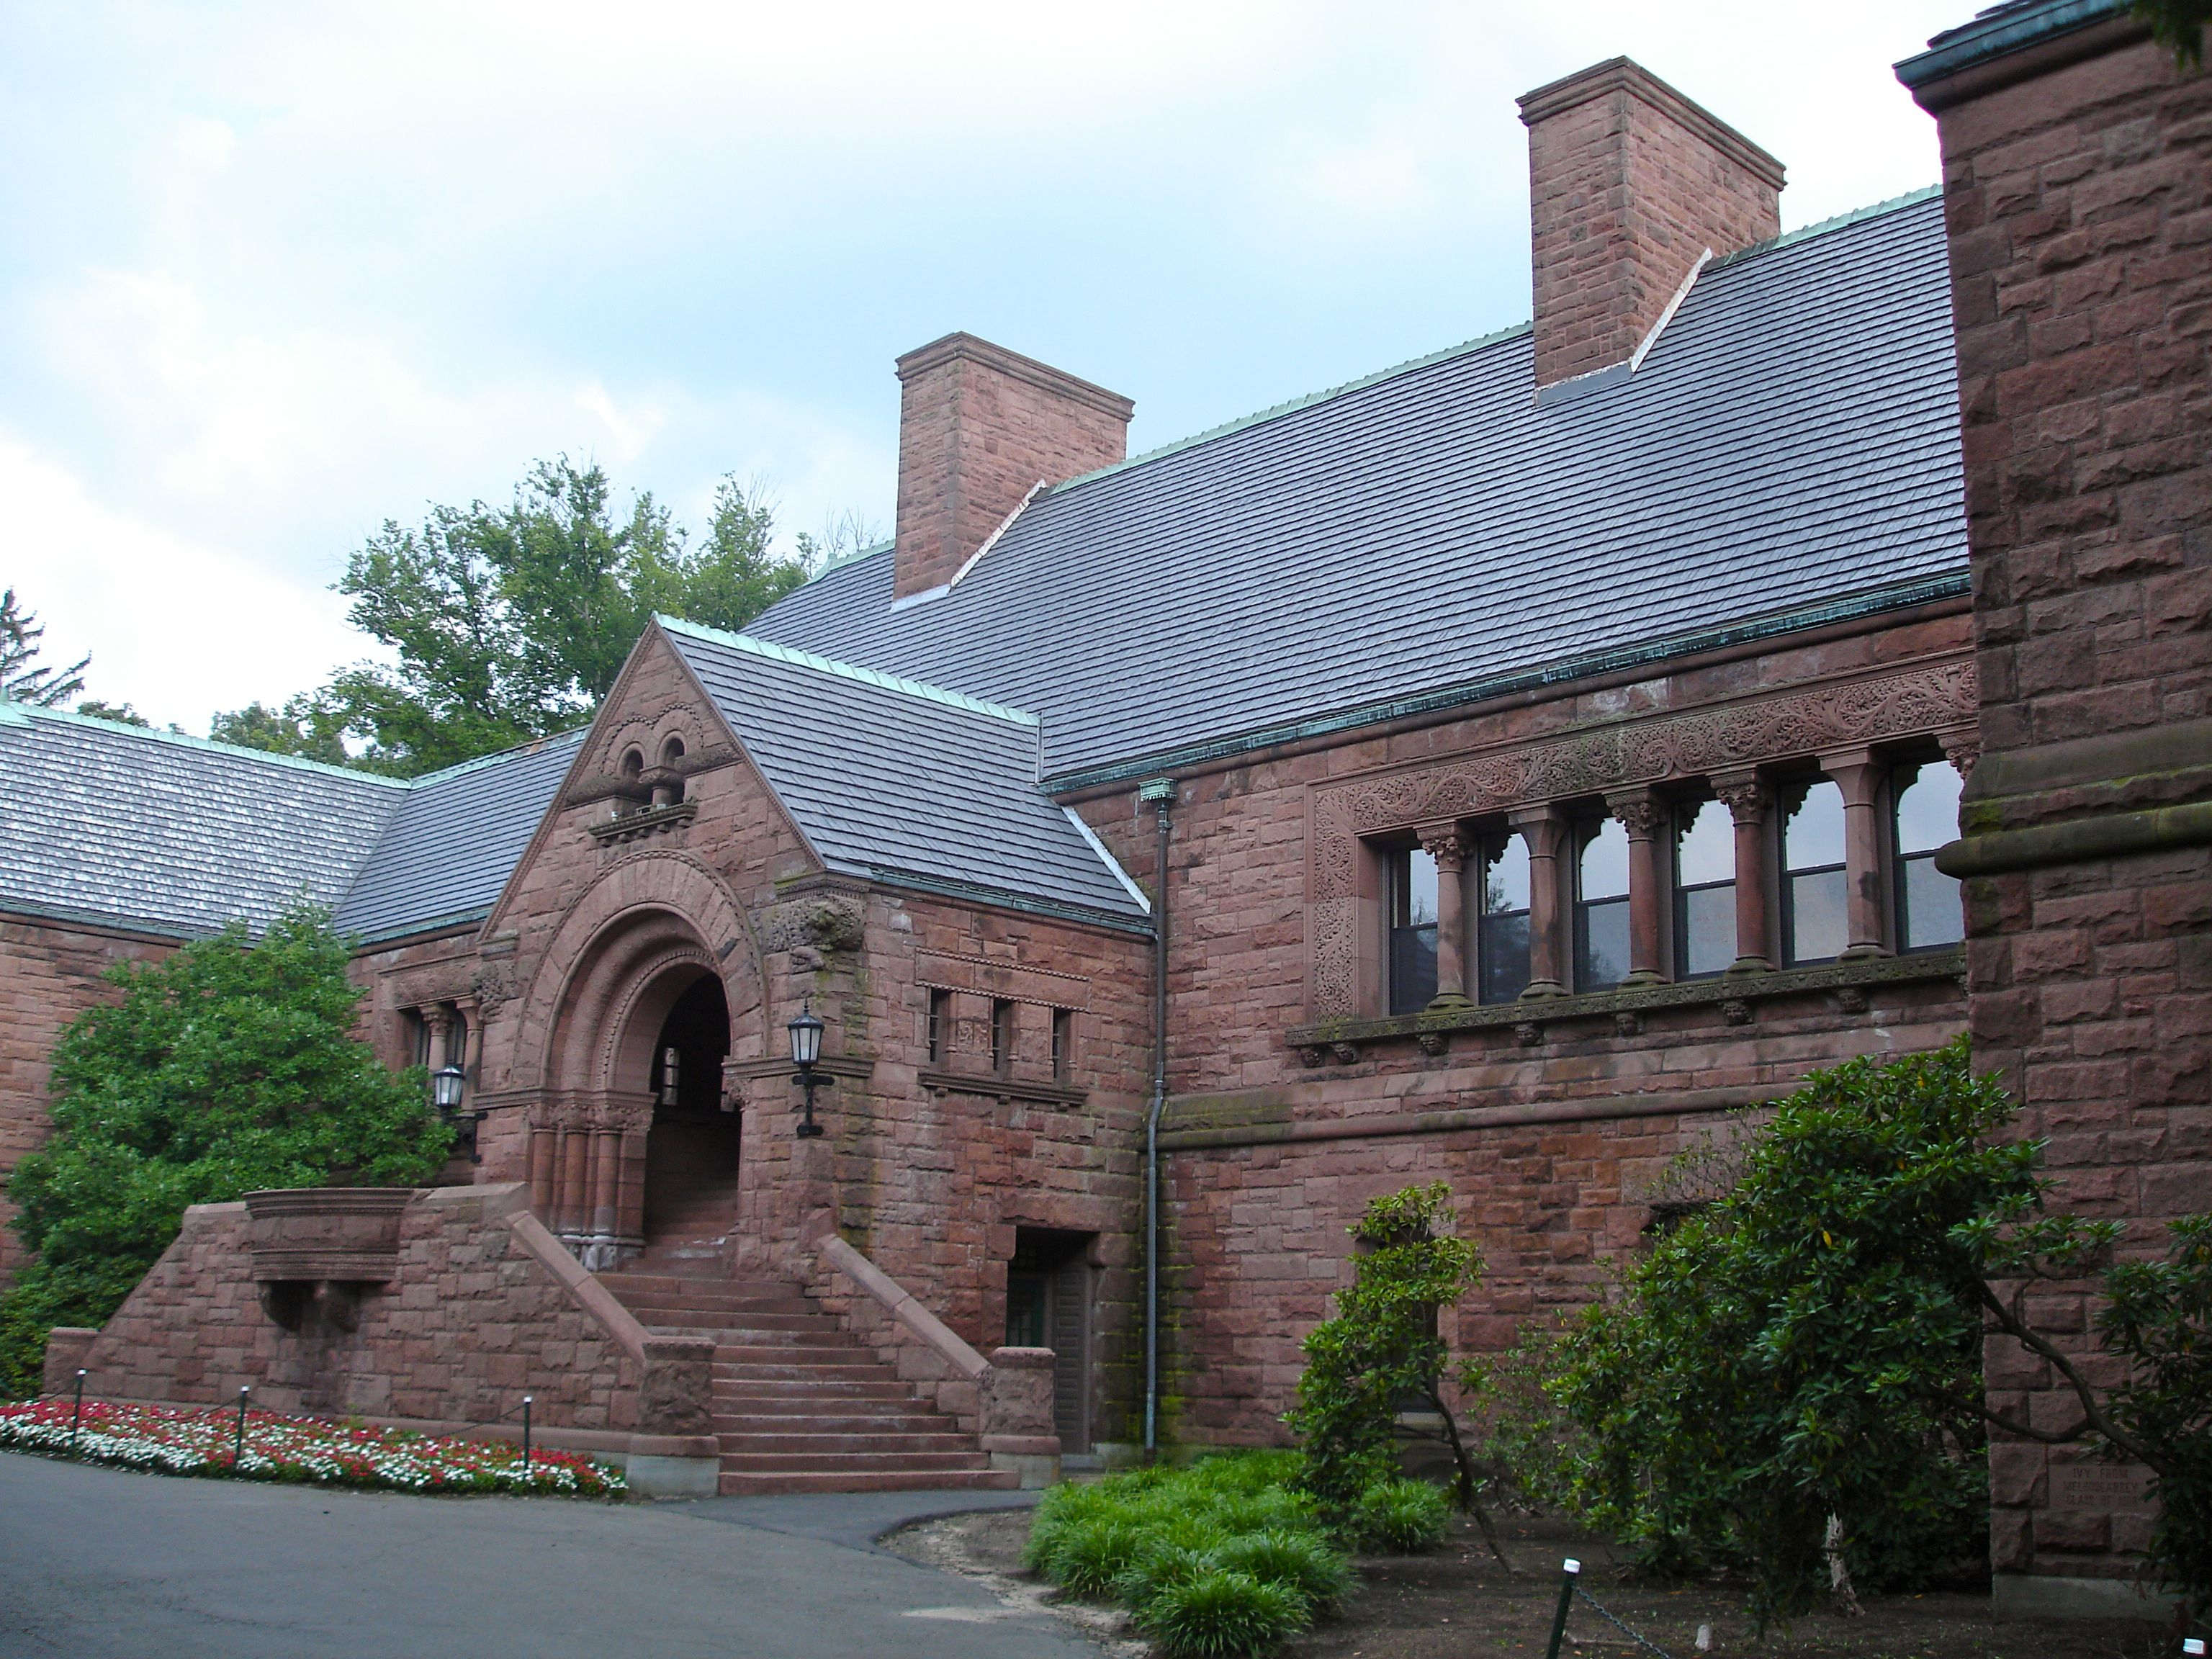 The Lawrenceville School Memorial Hall In NJ. North Country Vermont Black  Slate Roof (20